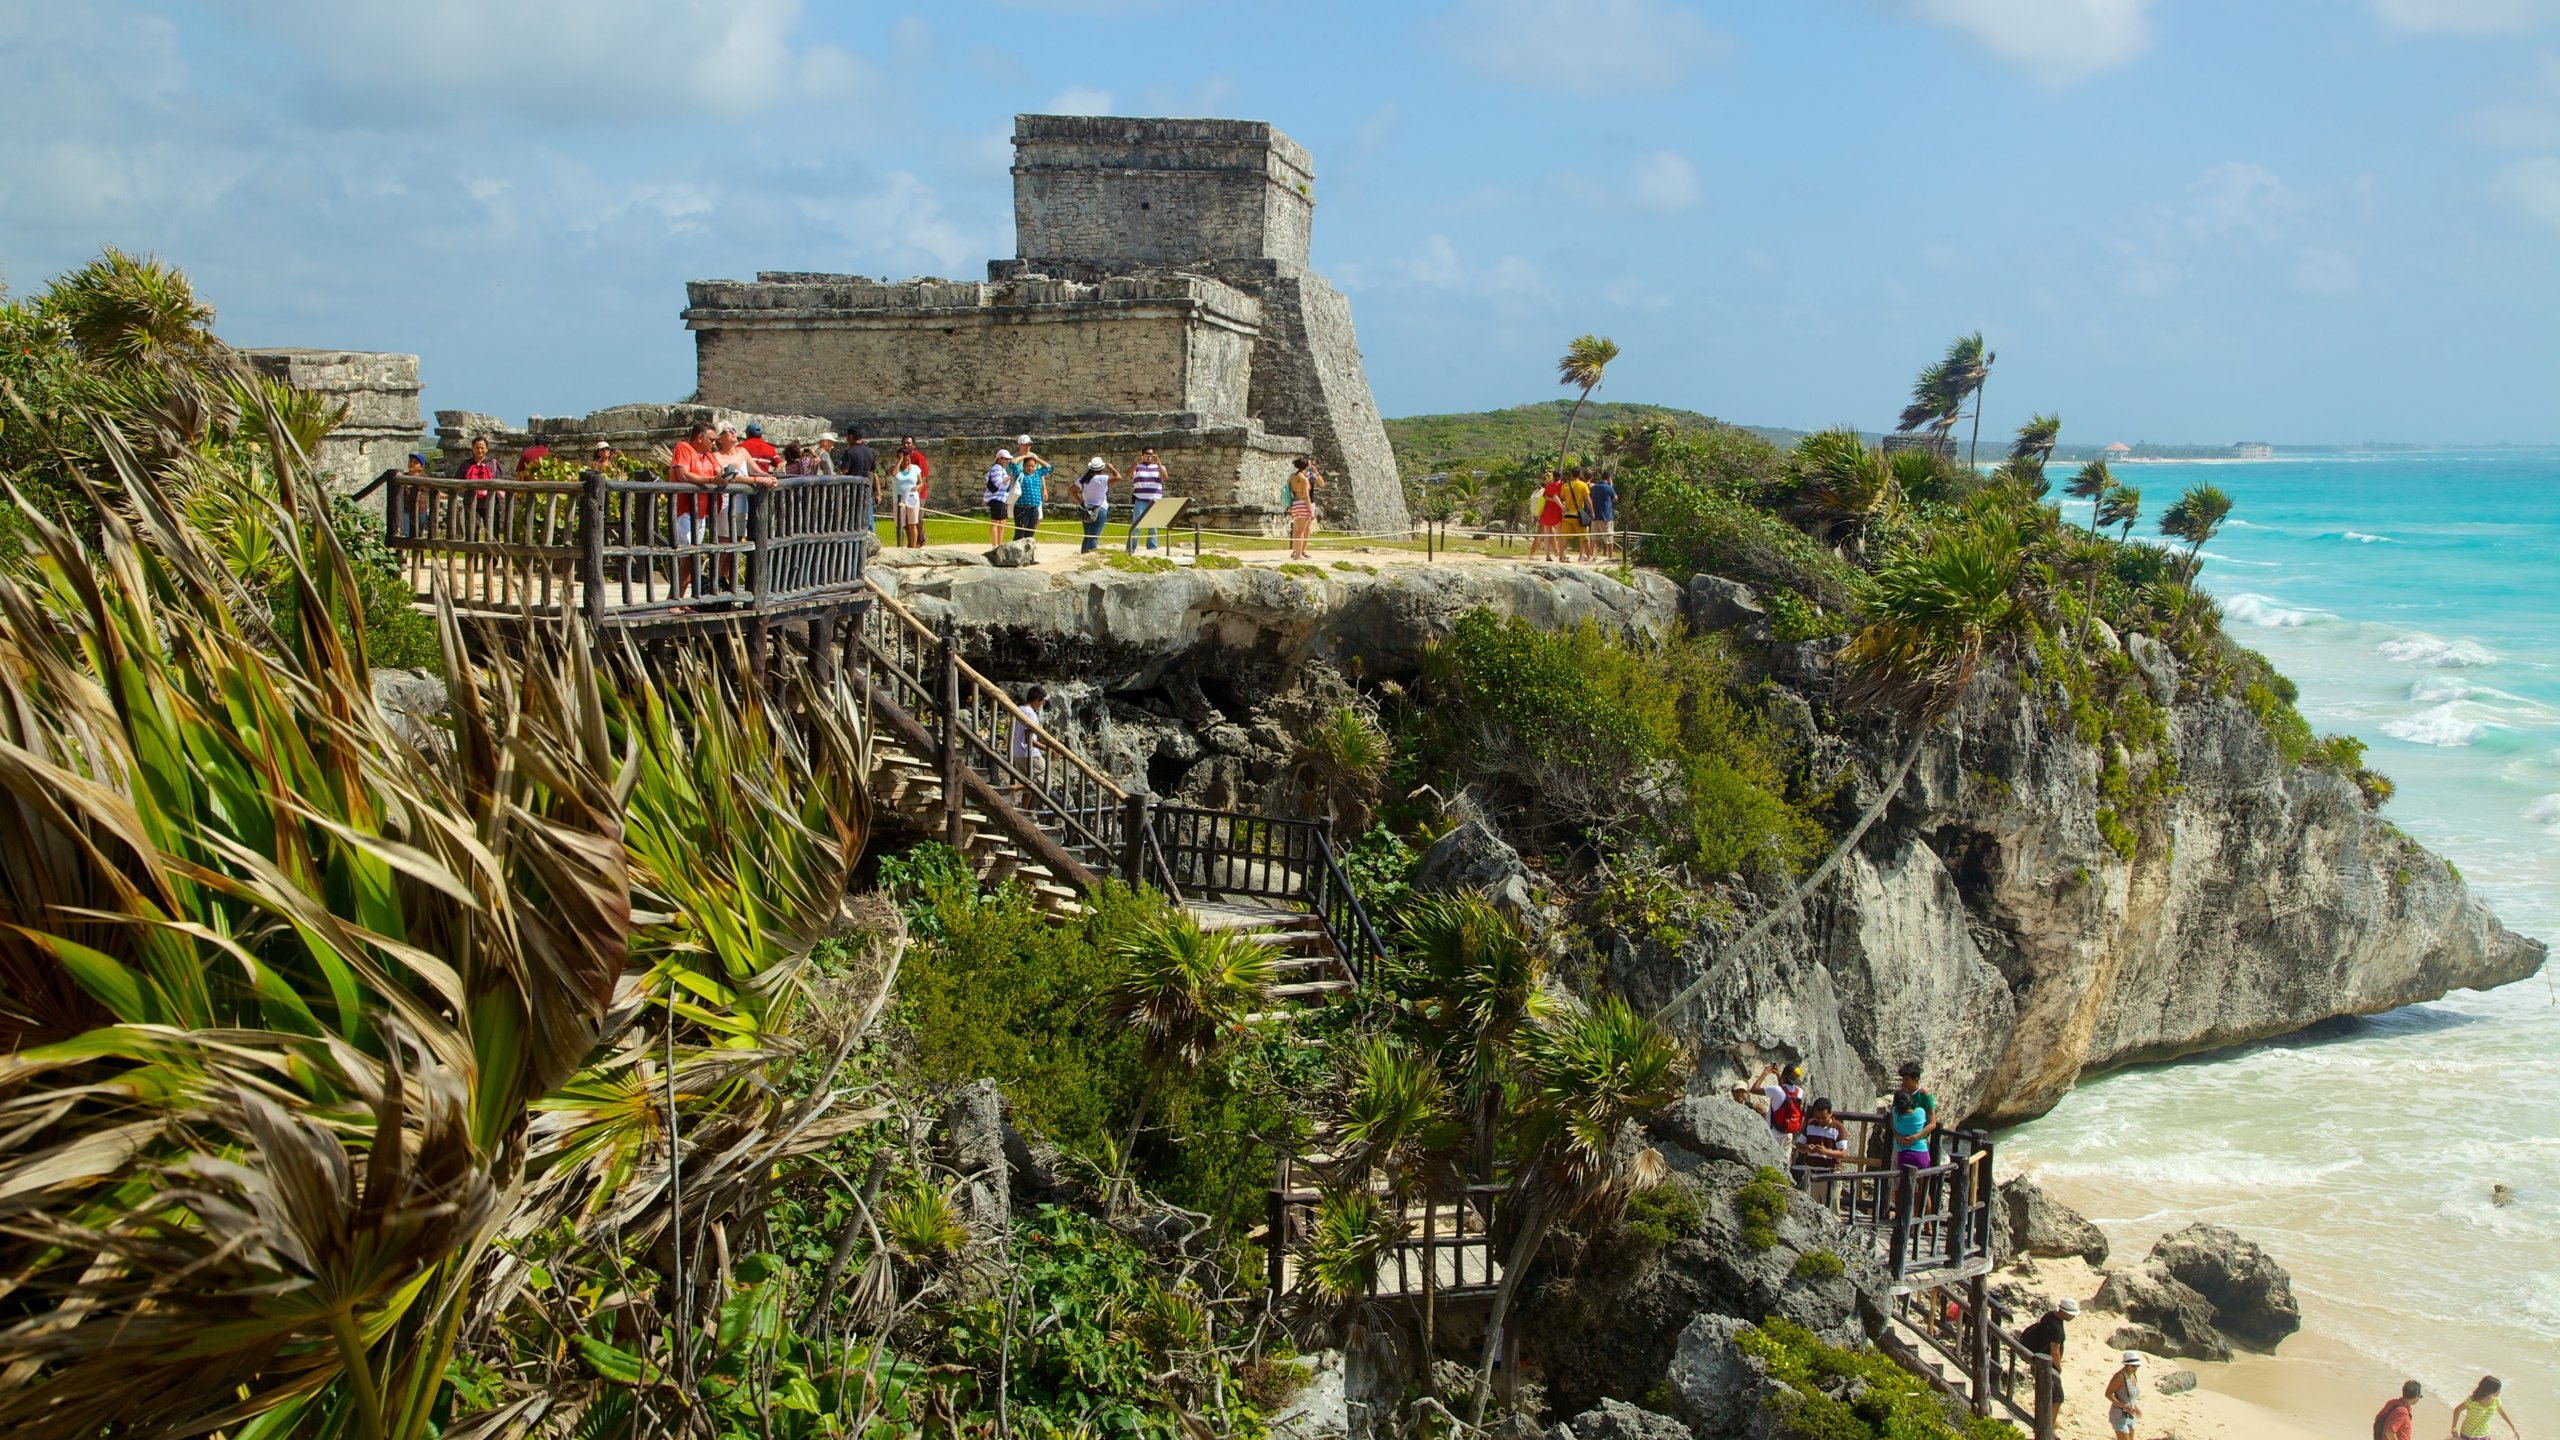 Top 10 Green Hotels in Tulum $40: Eco Friendly Hotels